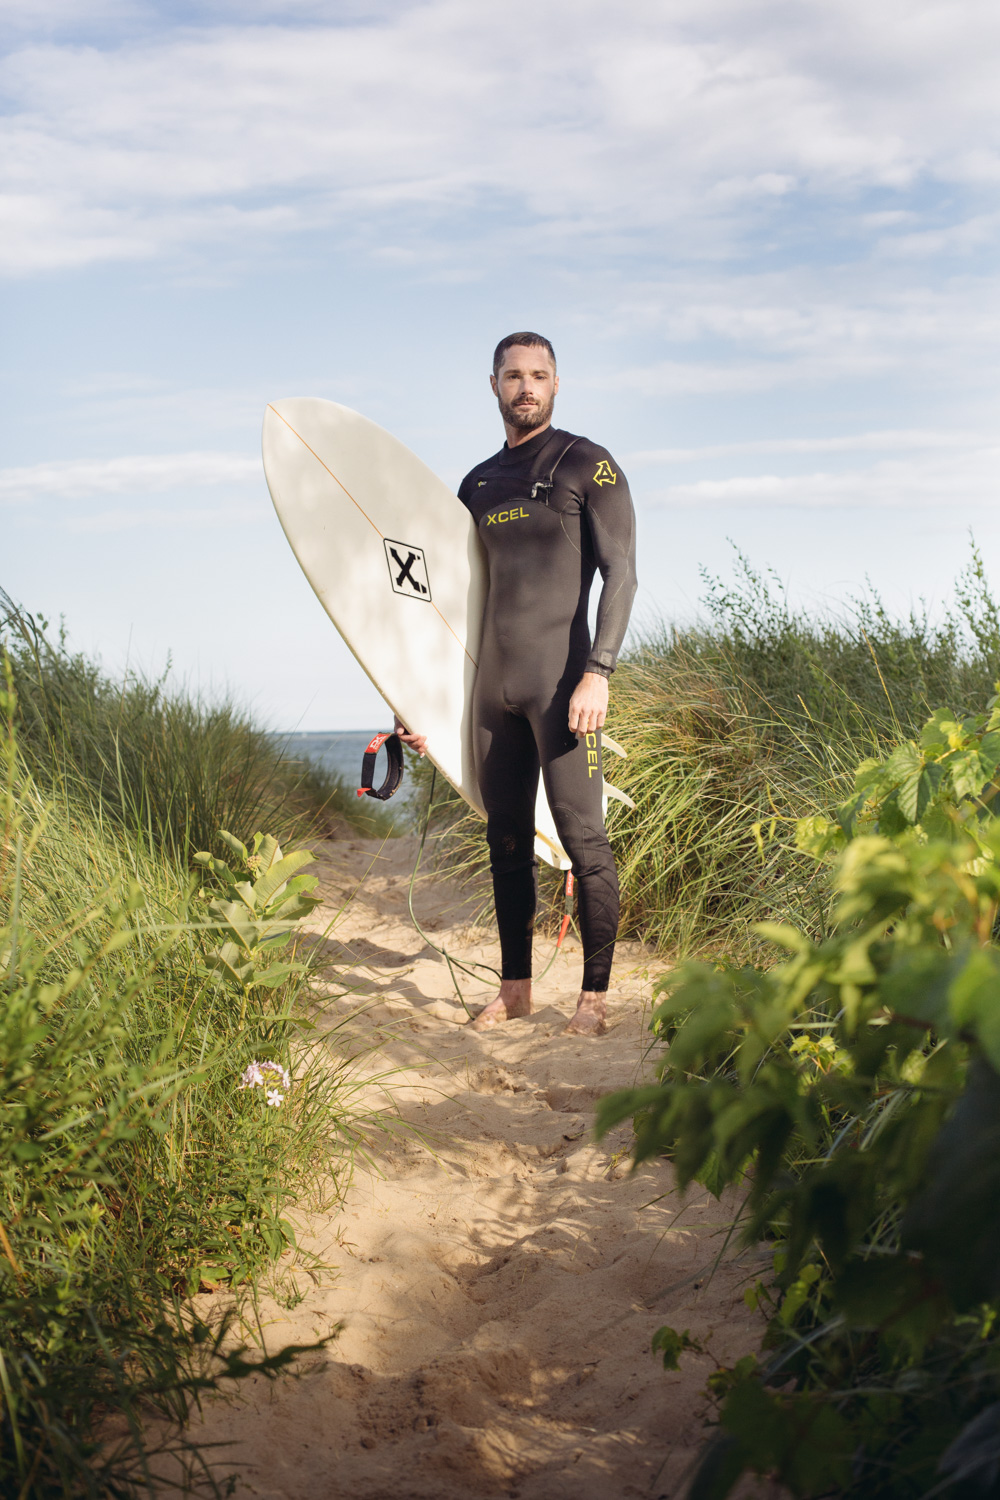 wetsuit-and-surfboard